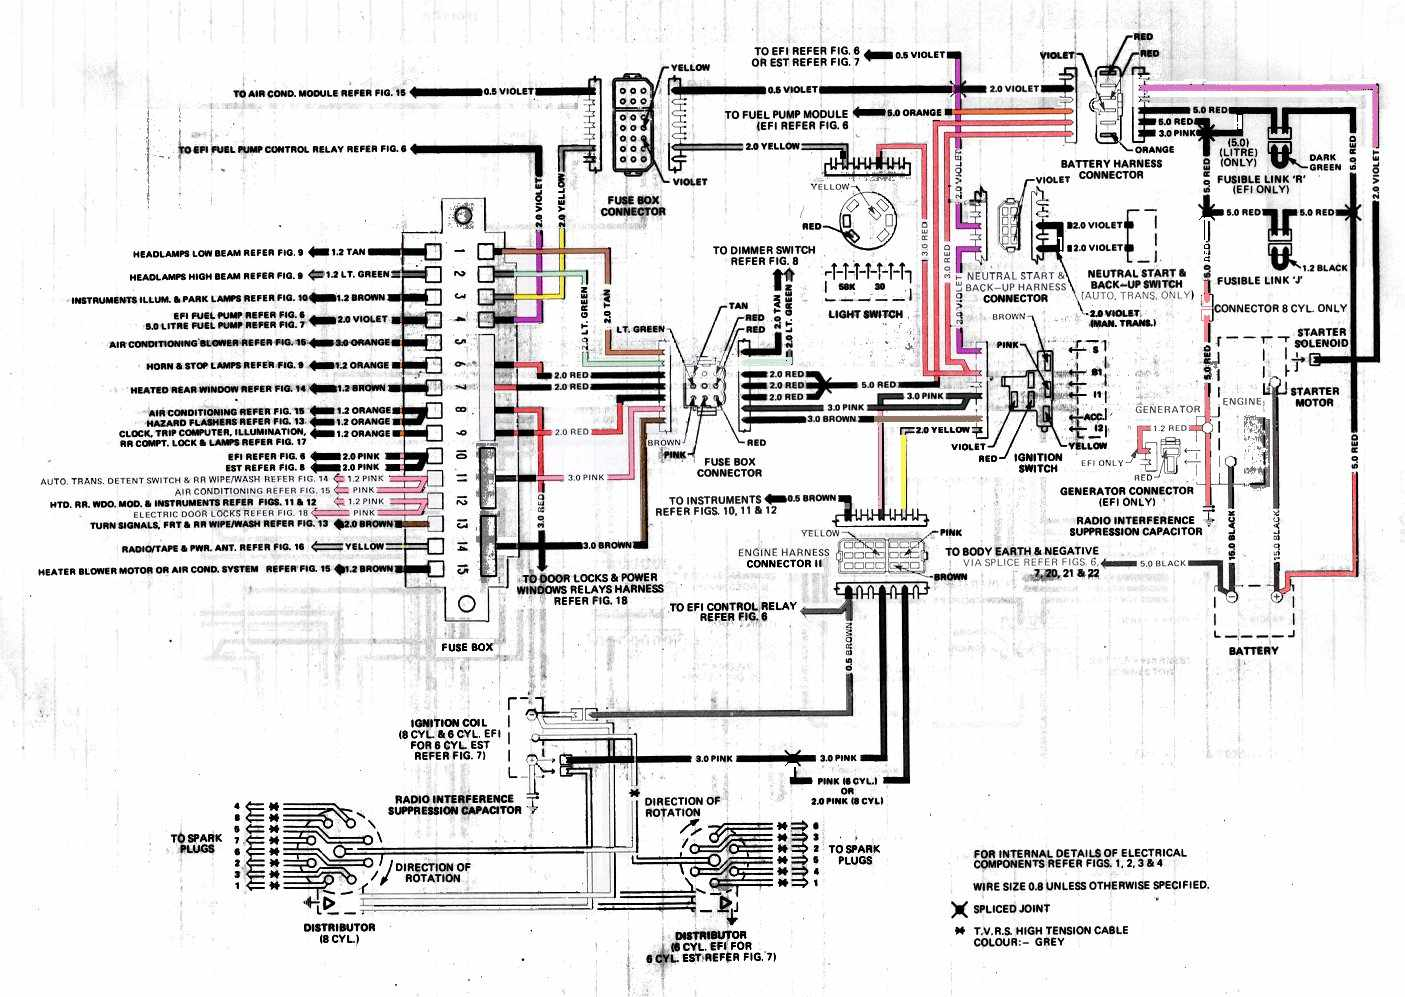 Holden VK Commodore Generator Electrical Wiring Diagram